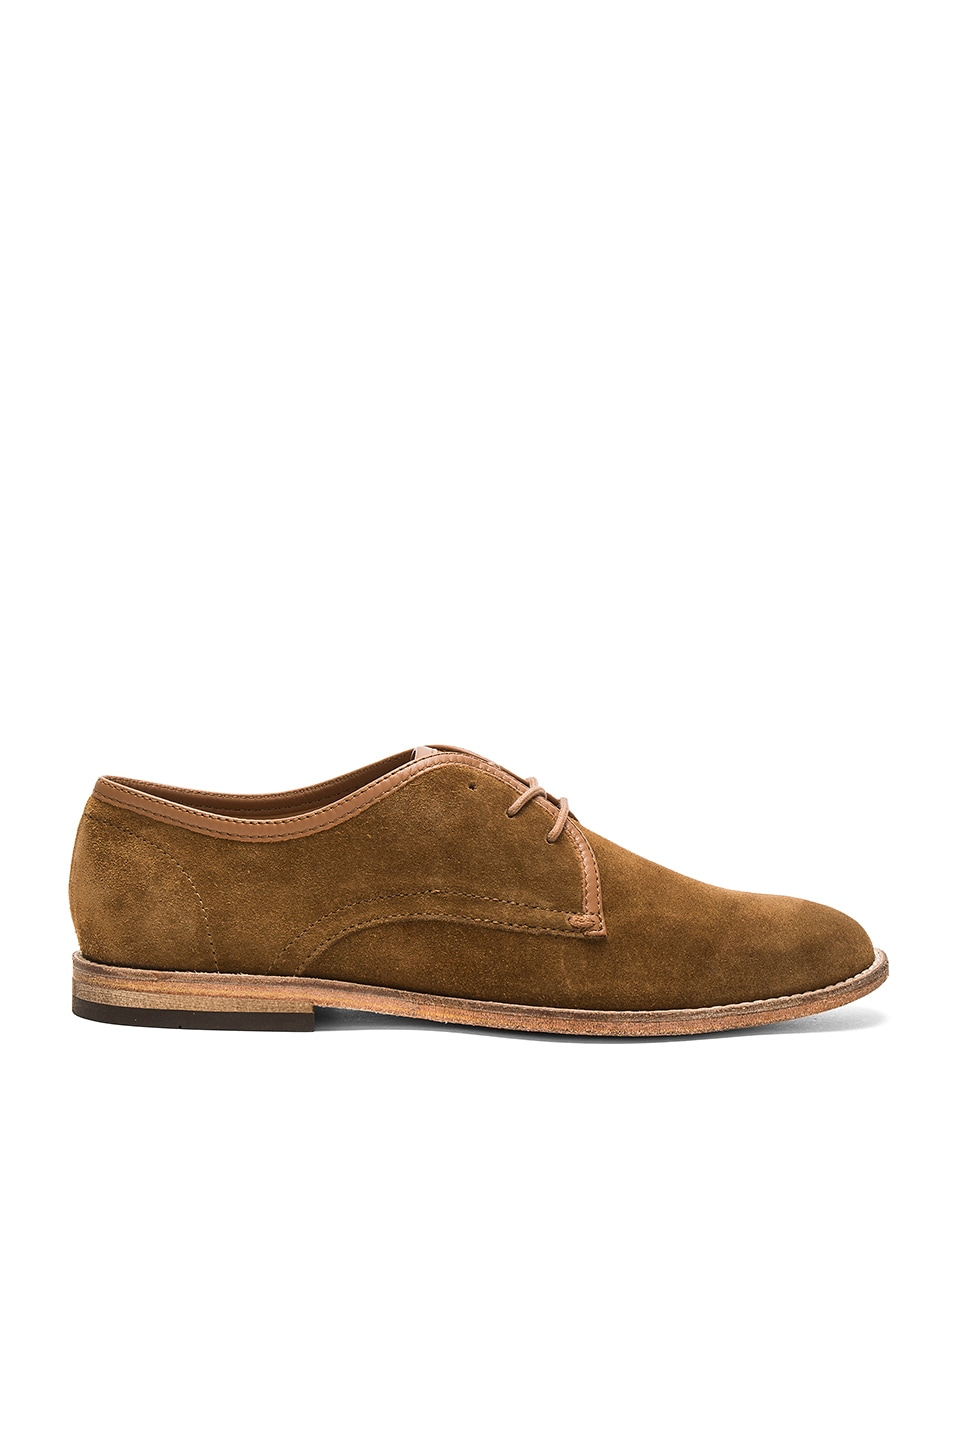 Hayane Suede by H by Hudson